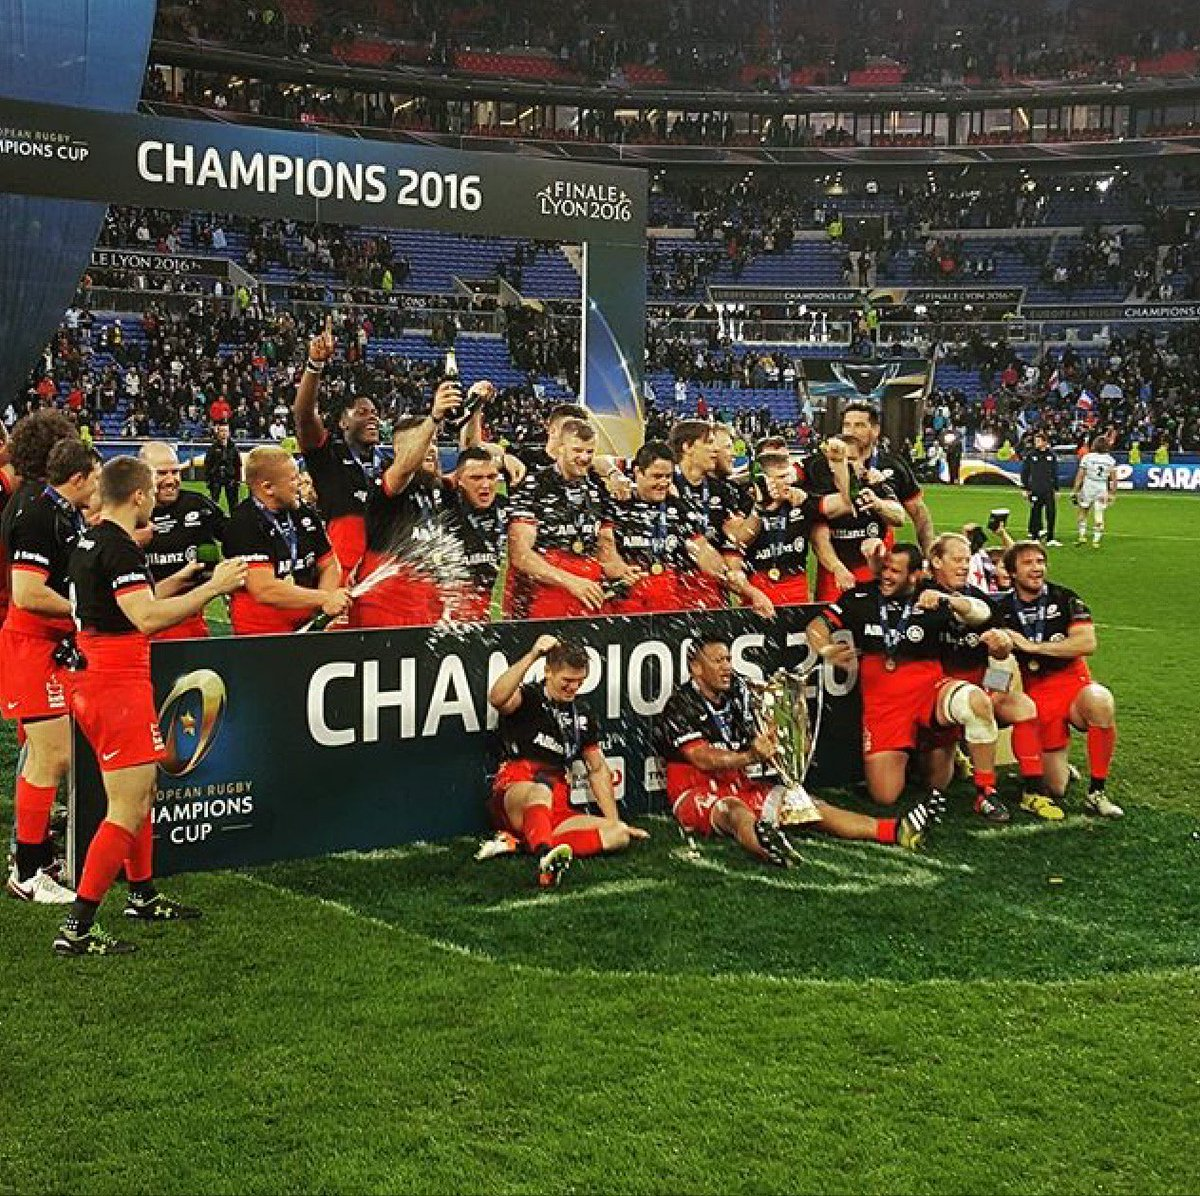 What a day! Thanks for all the @Saracens support you've shown. https://t.co/EDghNfeINS